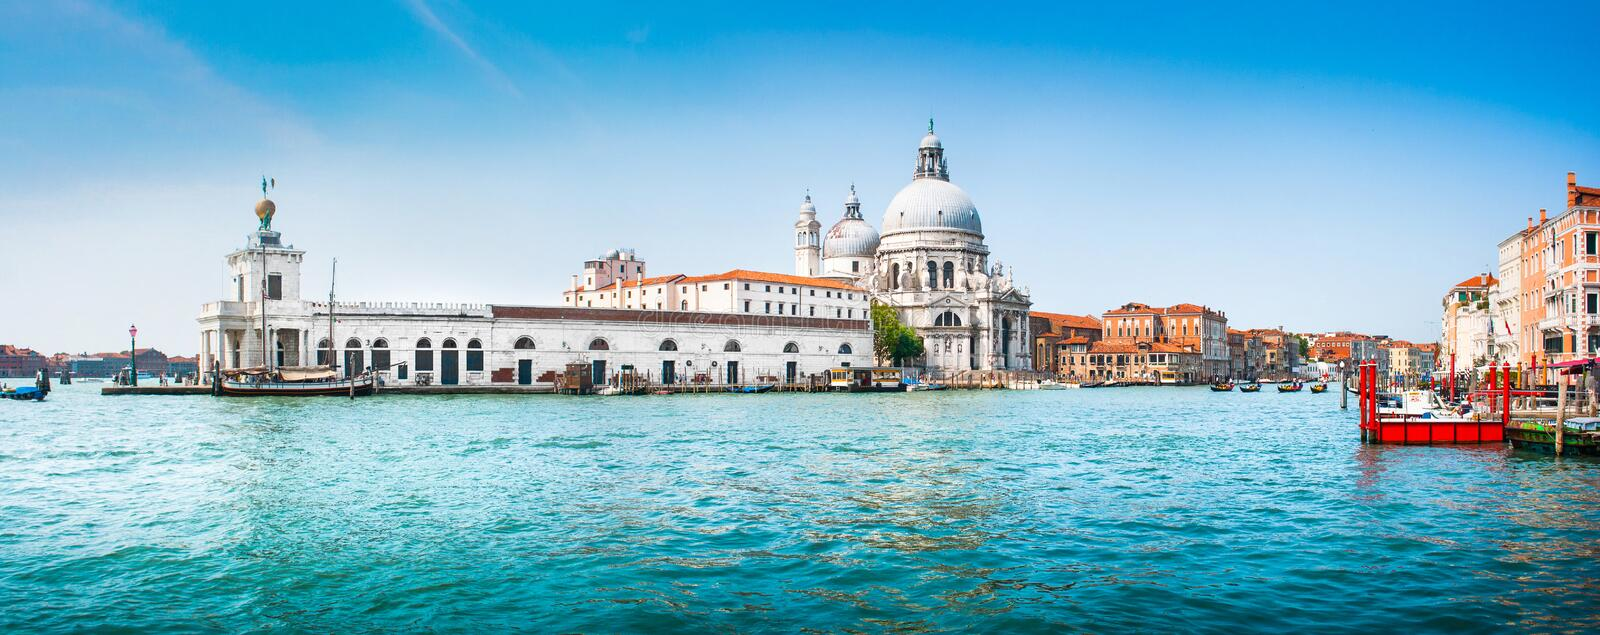 Panoramic view of Canal Grande with Basilica di Santa Maria della Salute, Venice, Italy royalty free stock photography